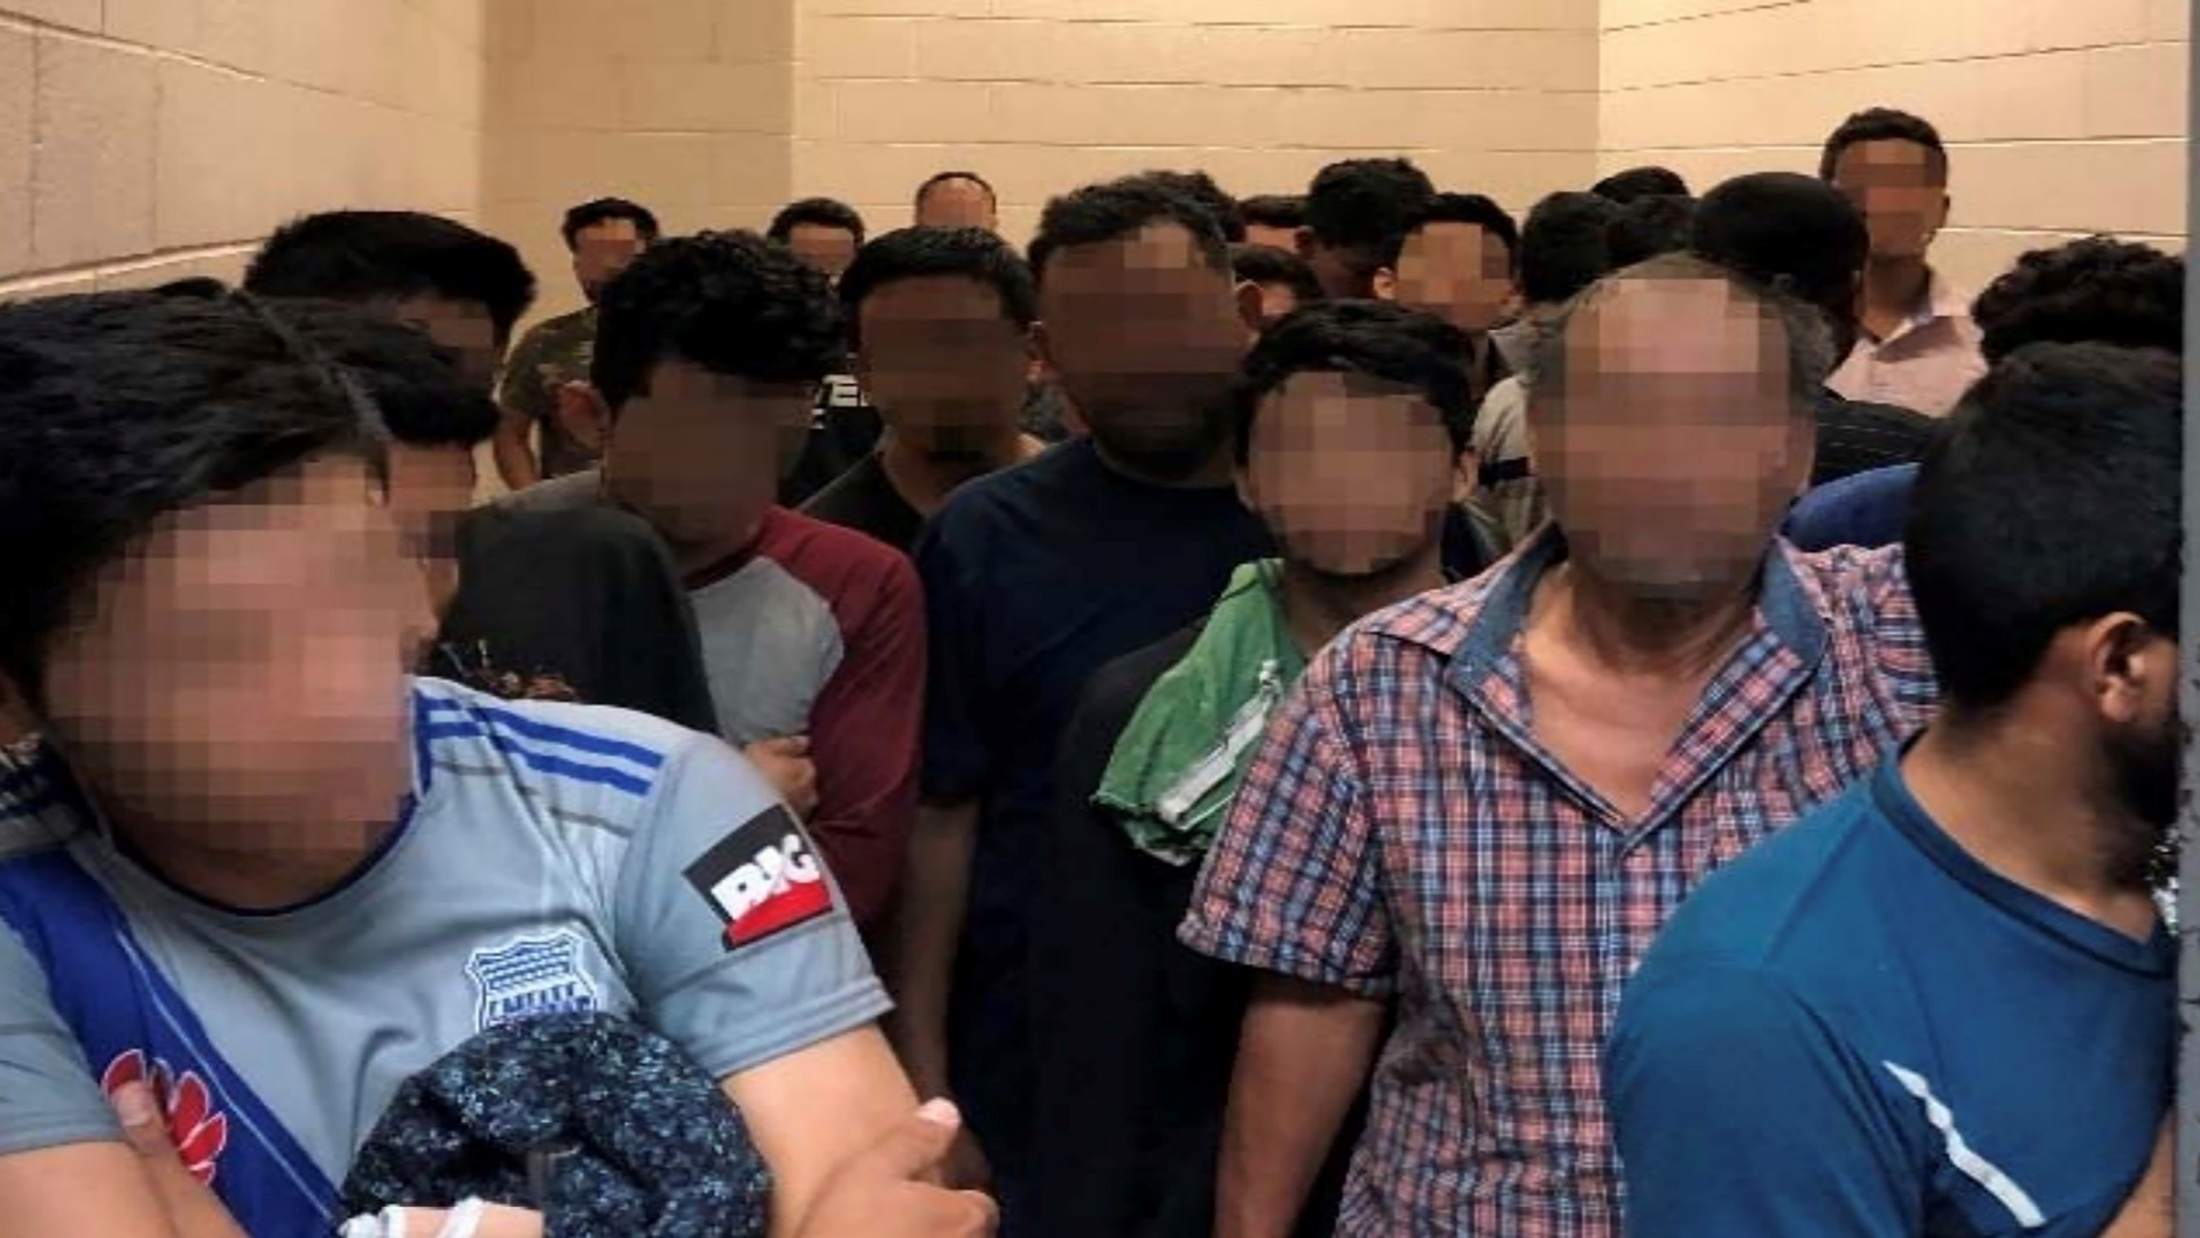 Men are crowded in a room at a Border Patrol station in a still image from video in McAllen, Texas, U.S. on June 10, 2019 and released as part of a report by the Department of Homeland Security's Office of Inspector General on July 2, 2019. Picture pixelated at source. Office of Inspector General/DHS/Handout via REUTERS